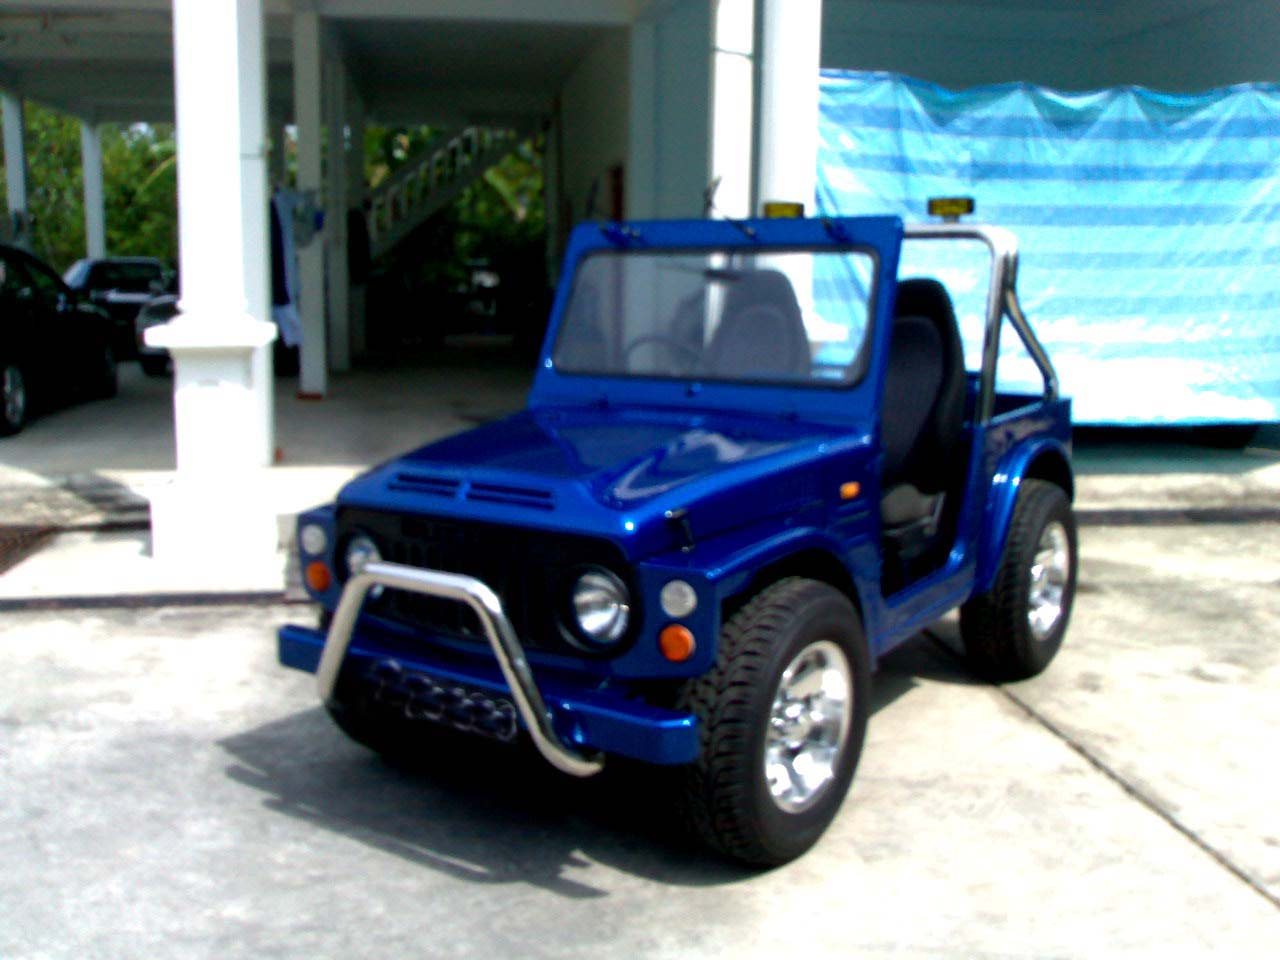 Time to show my two Suzuki LJ80. Posted by Wilson at 02:56